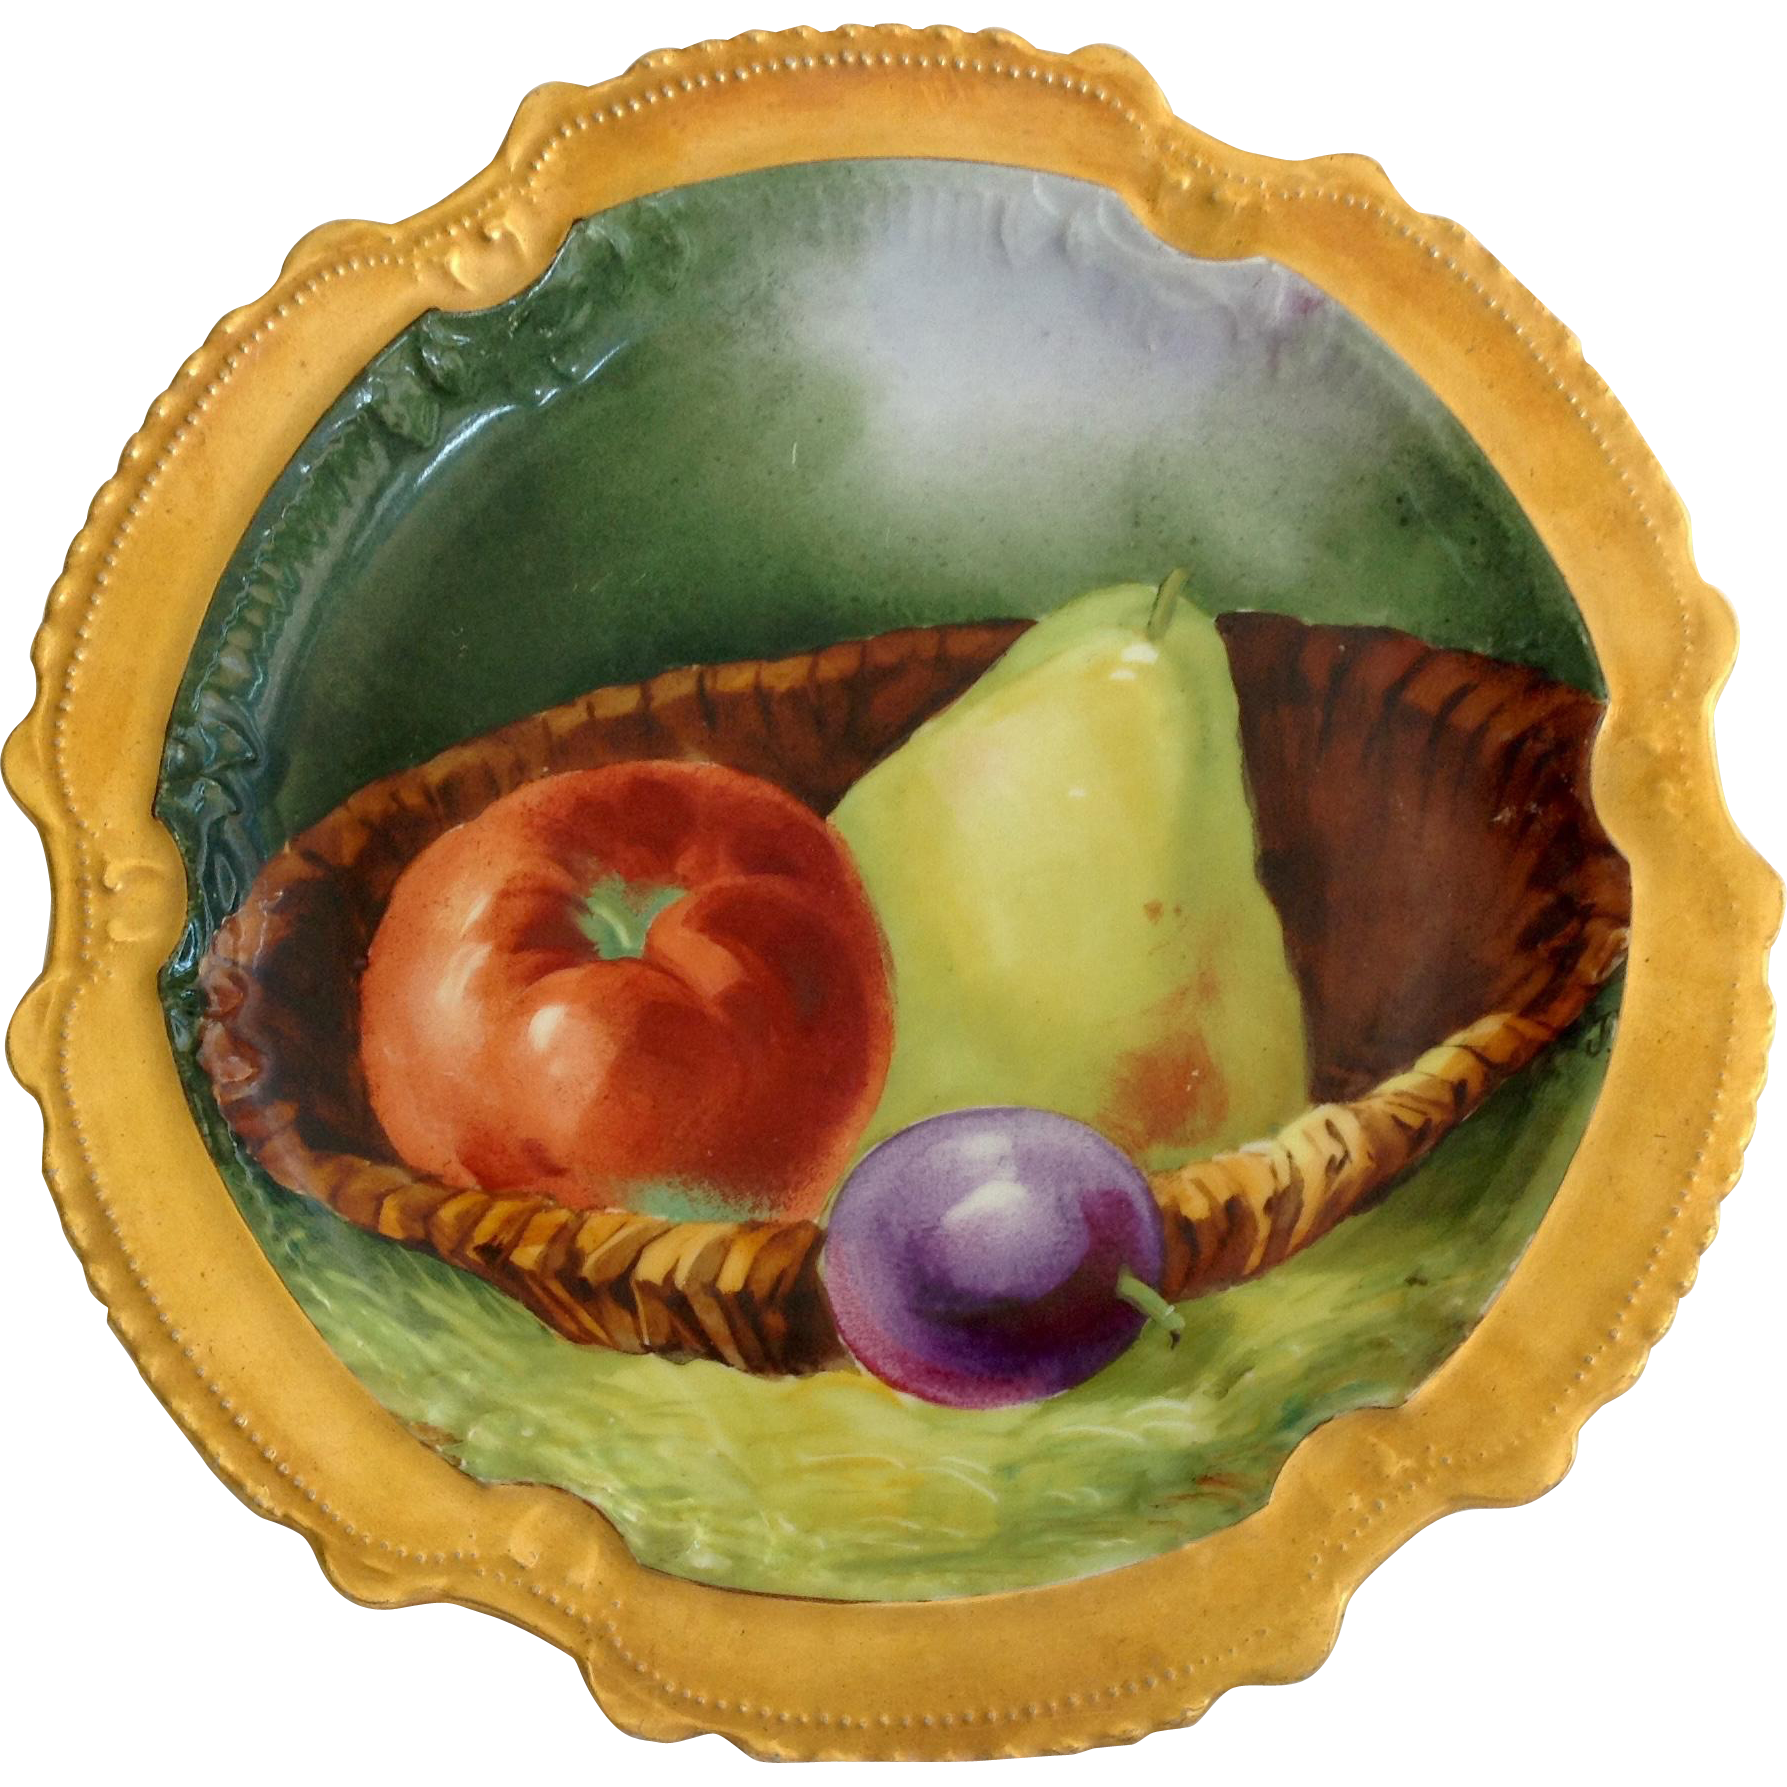 Coronet Limoges France Factory Decorated Gilded Rim Still-Life Fruits Plate Early 1900s